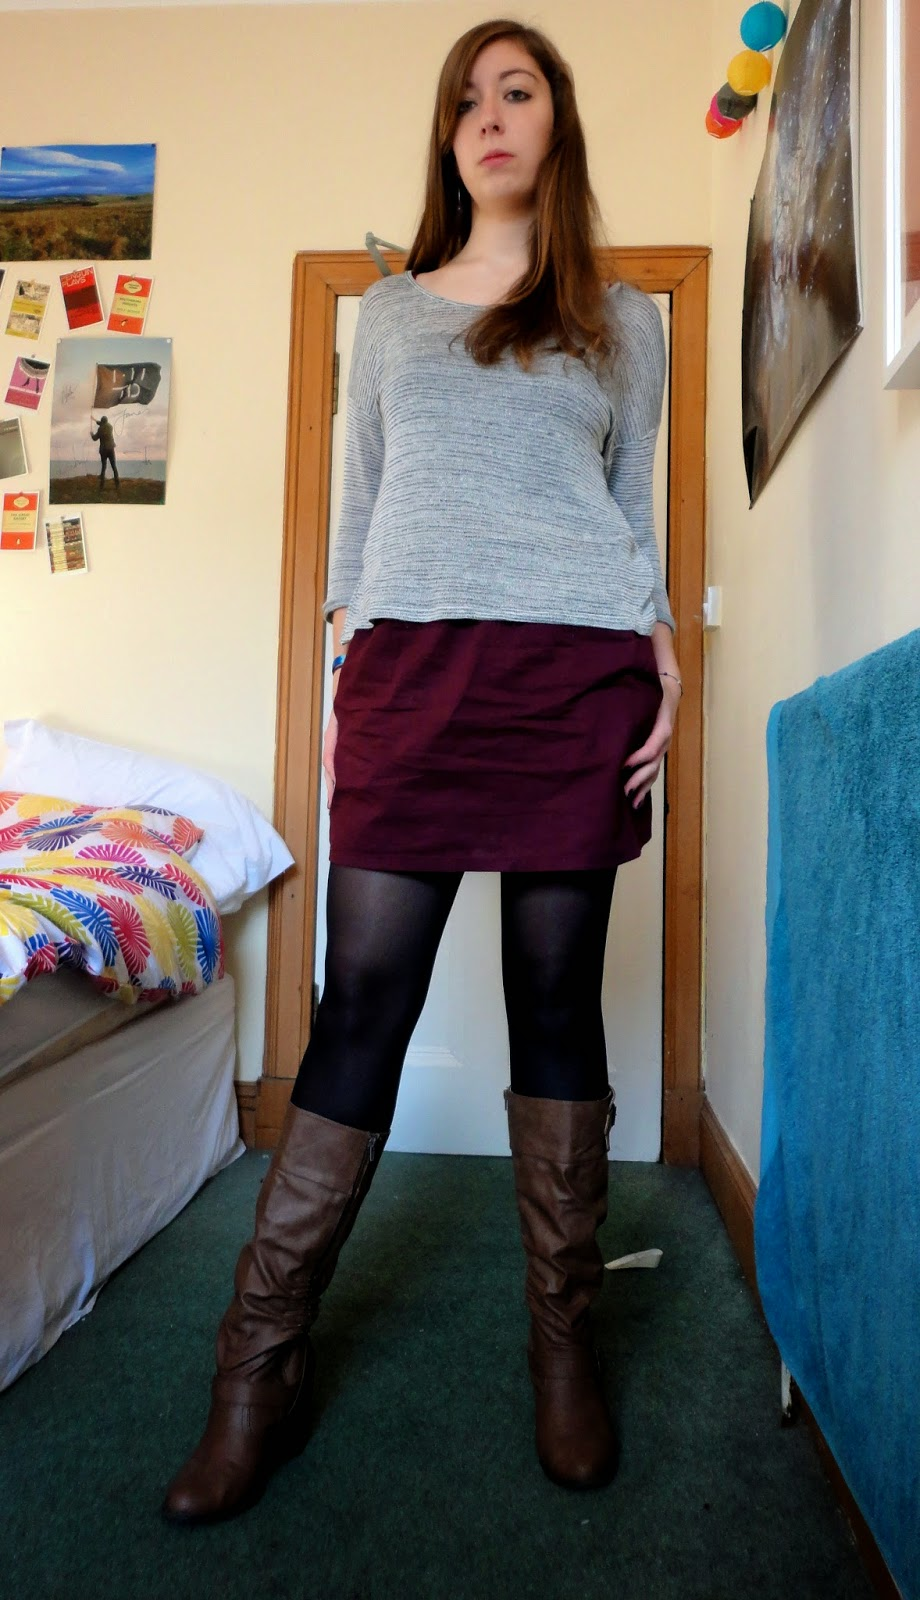 Feeling Confident - grey top, short purple skirt, brown heeled boots outfit